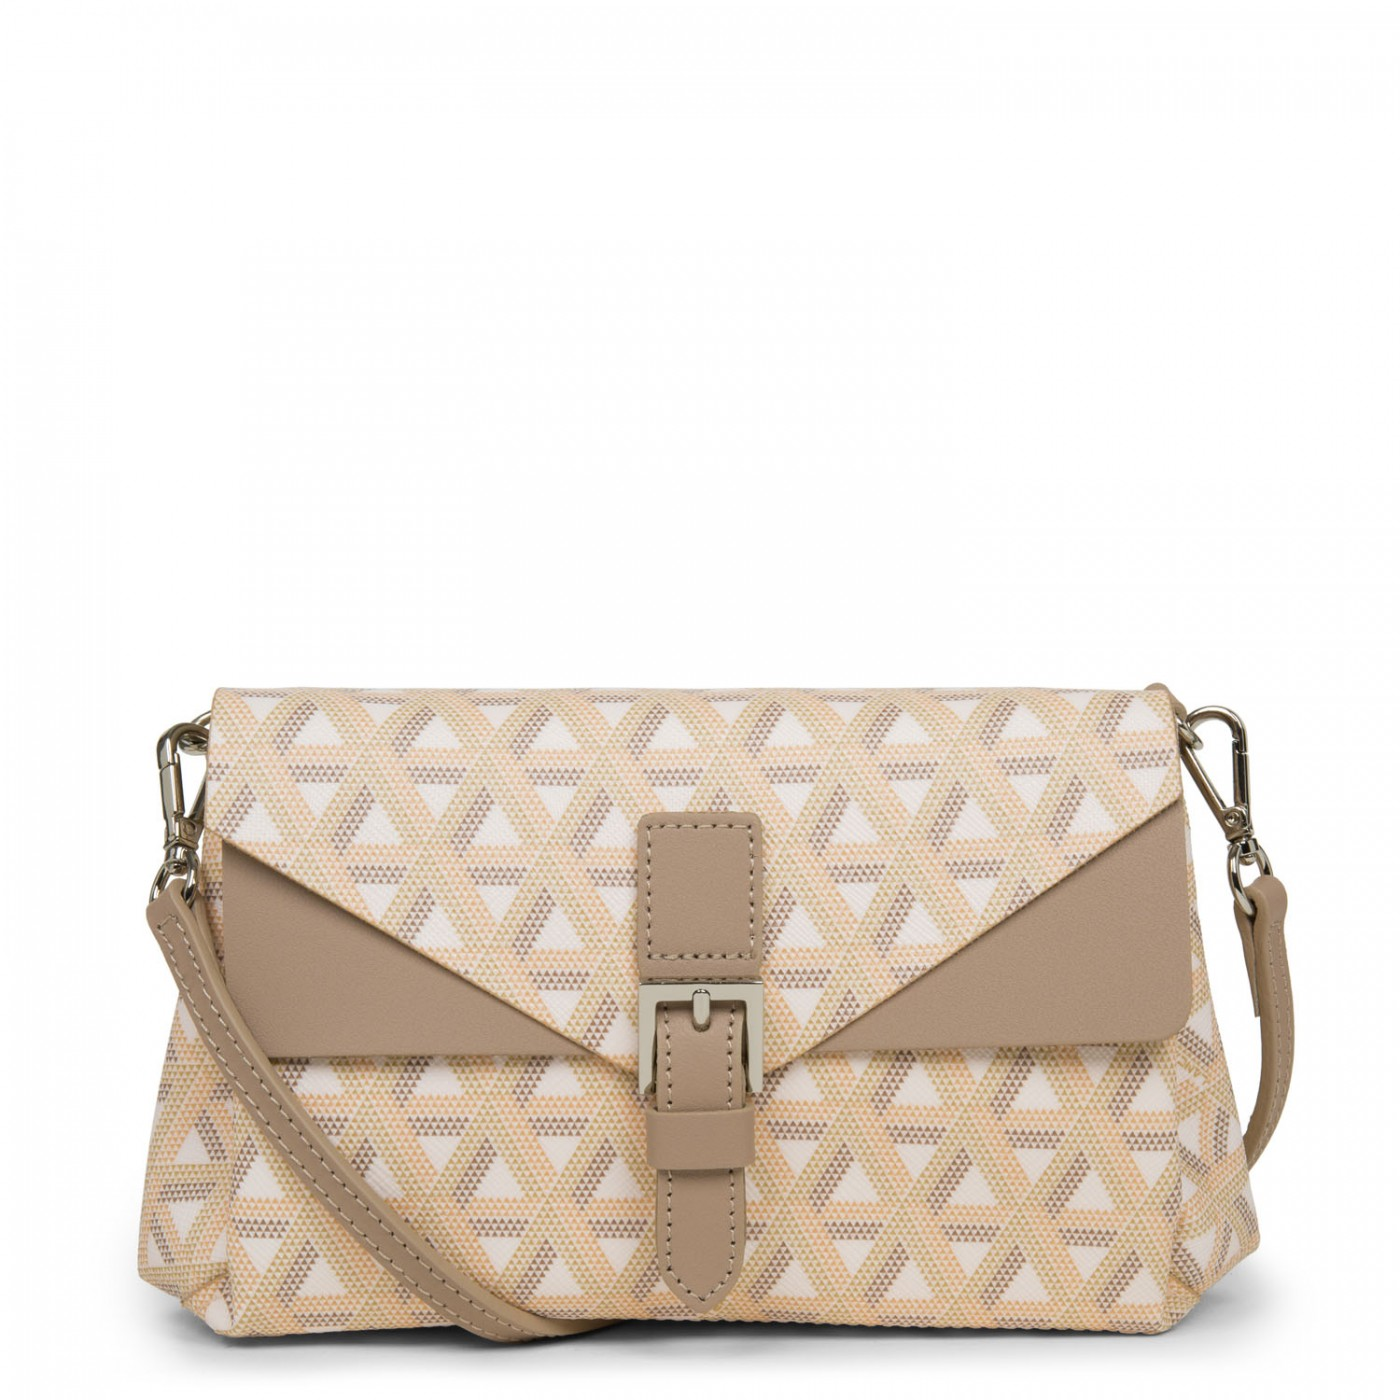 LANCASTER IKON SMALL CROSSBODY BAG - BEIGE